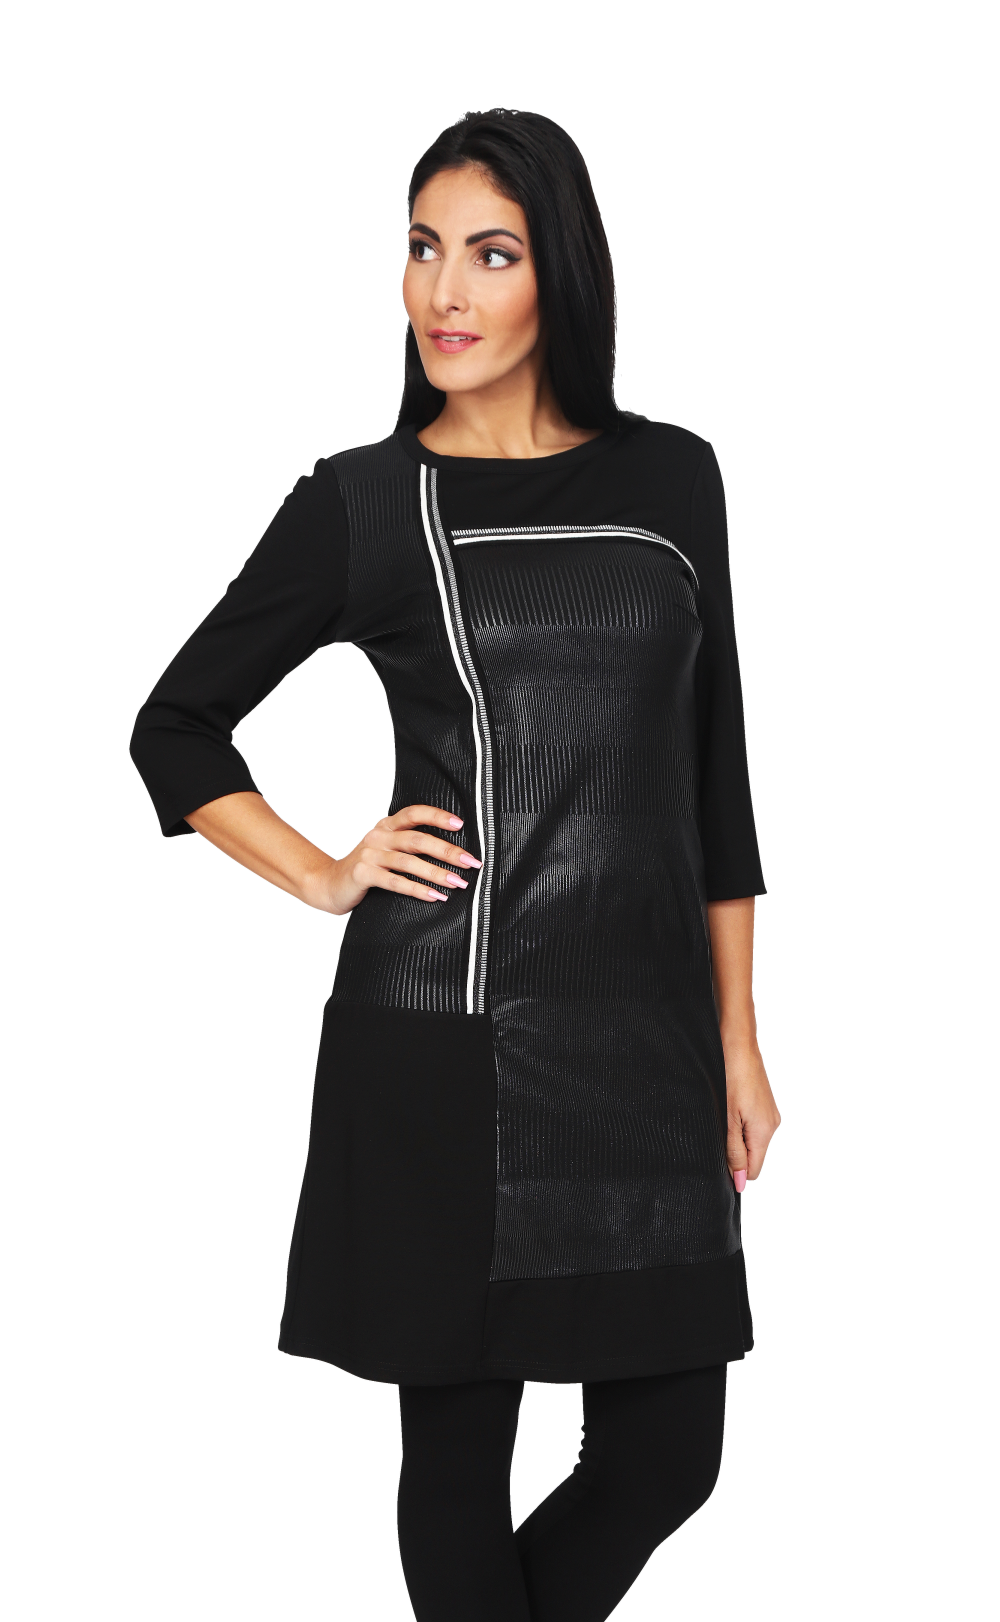 S'Quise Paris: Cropped Sleeve Faux Leather Midi Dress/Tunic SQ_2512_N